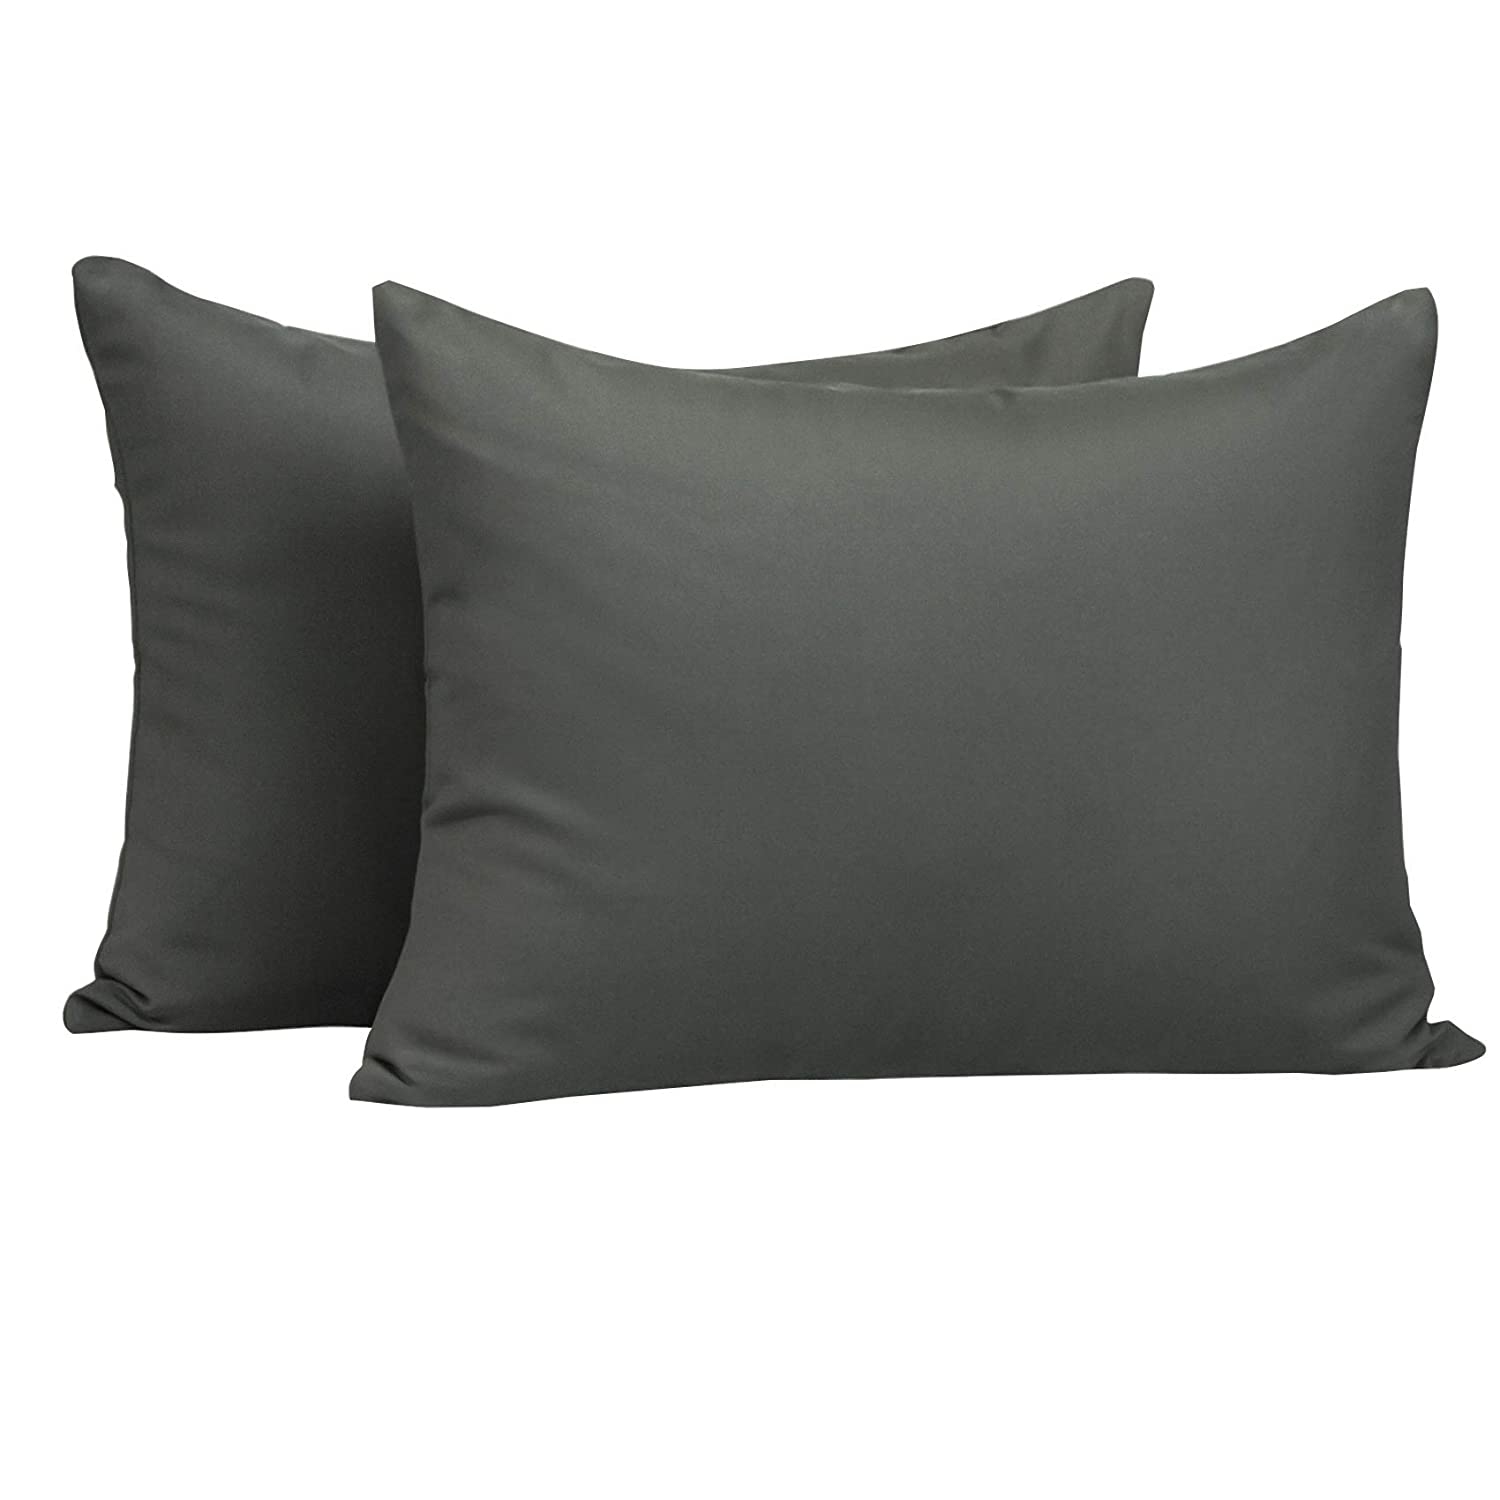 NTBAY Microfiber Toddler Pillowcases Max 64% OFF 2 Pcs Inexpensive Trave Zipper Closure